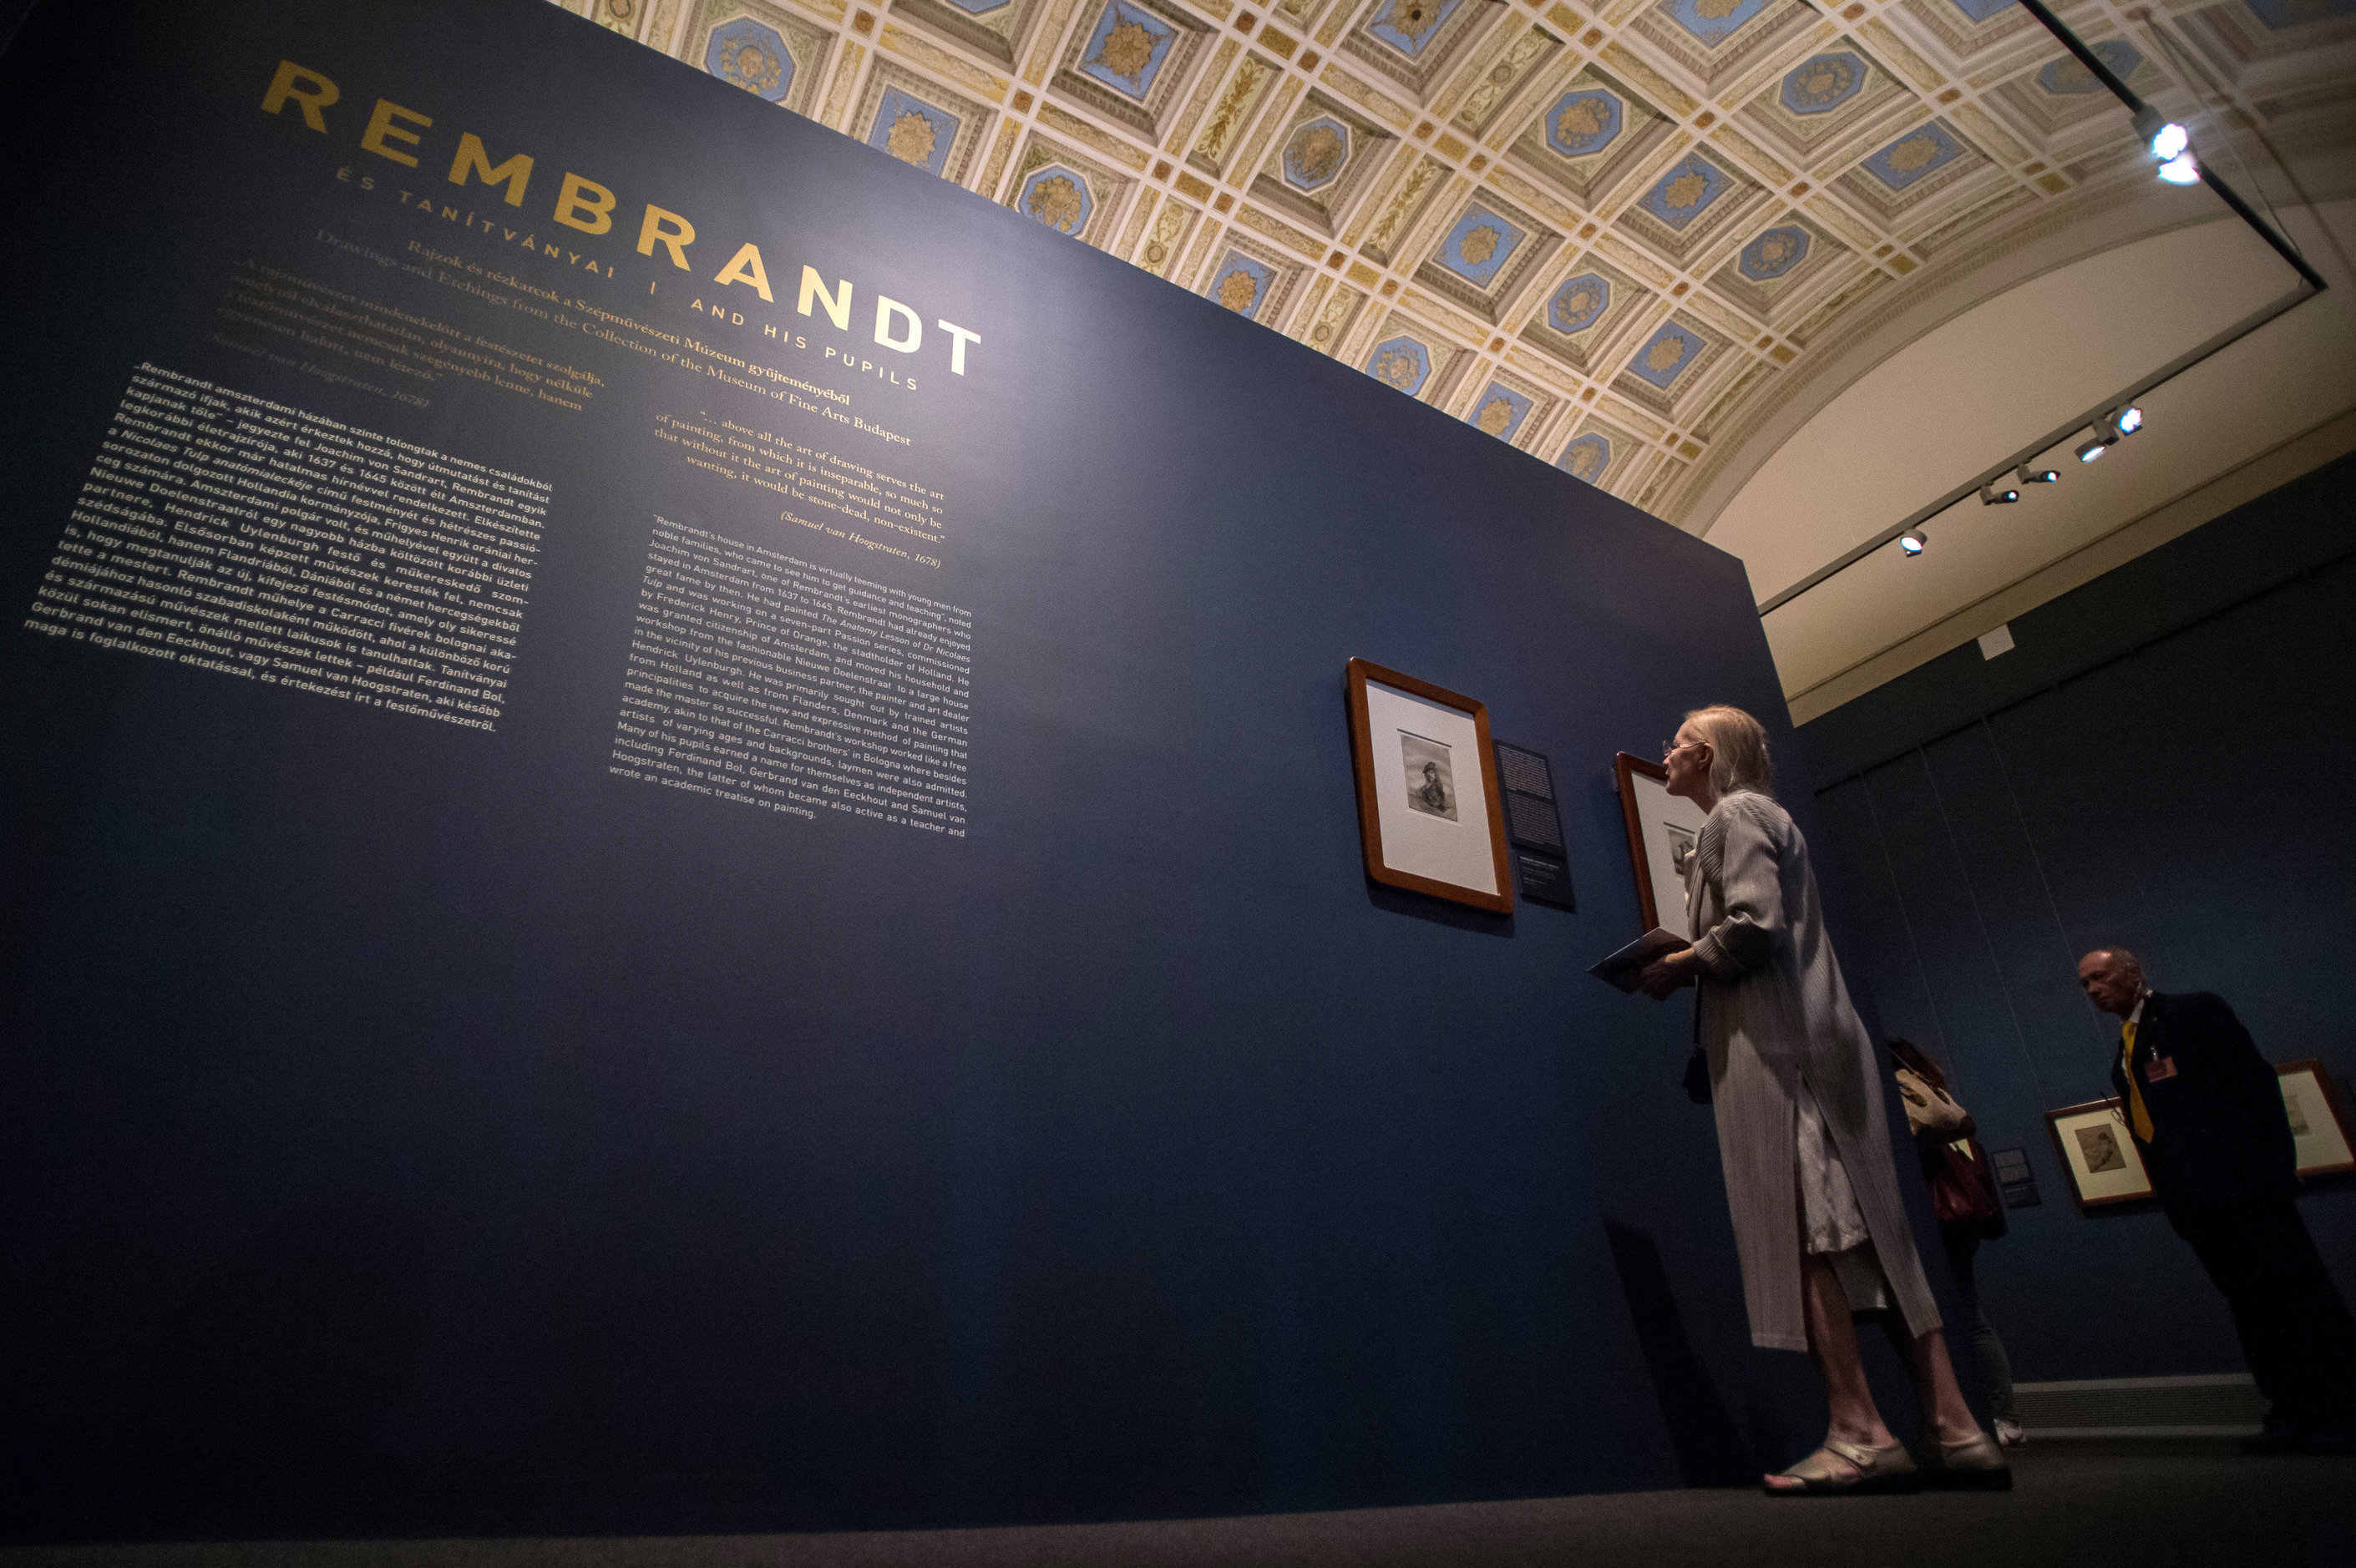 'Rembrandt and his pupils' exhibition opens at Museum of Fine Arts